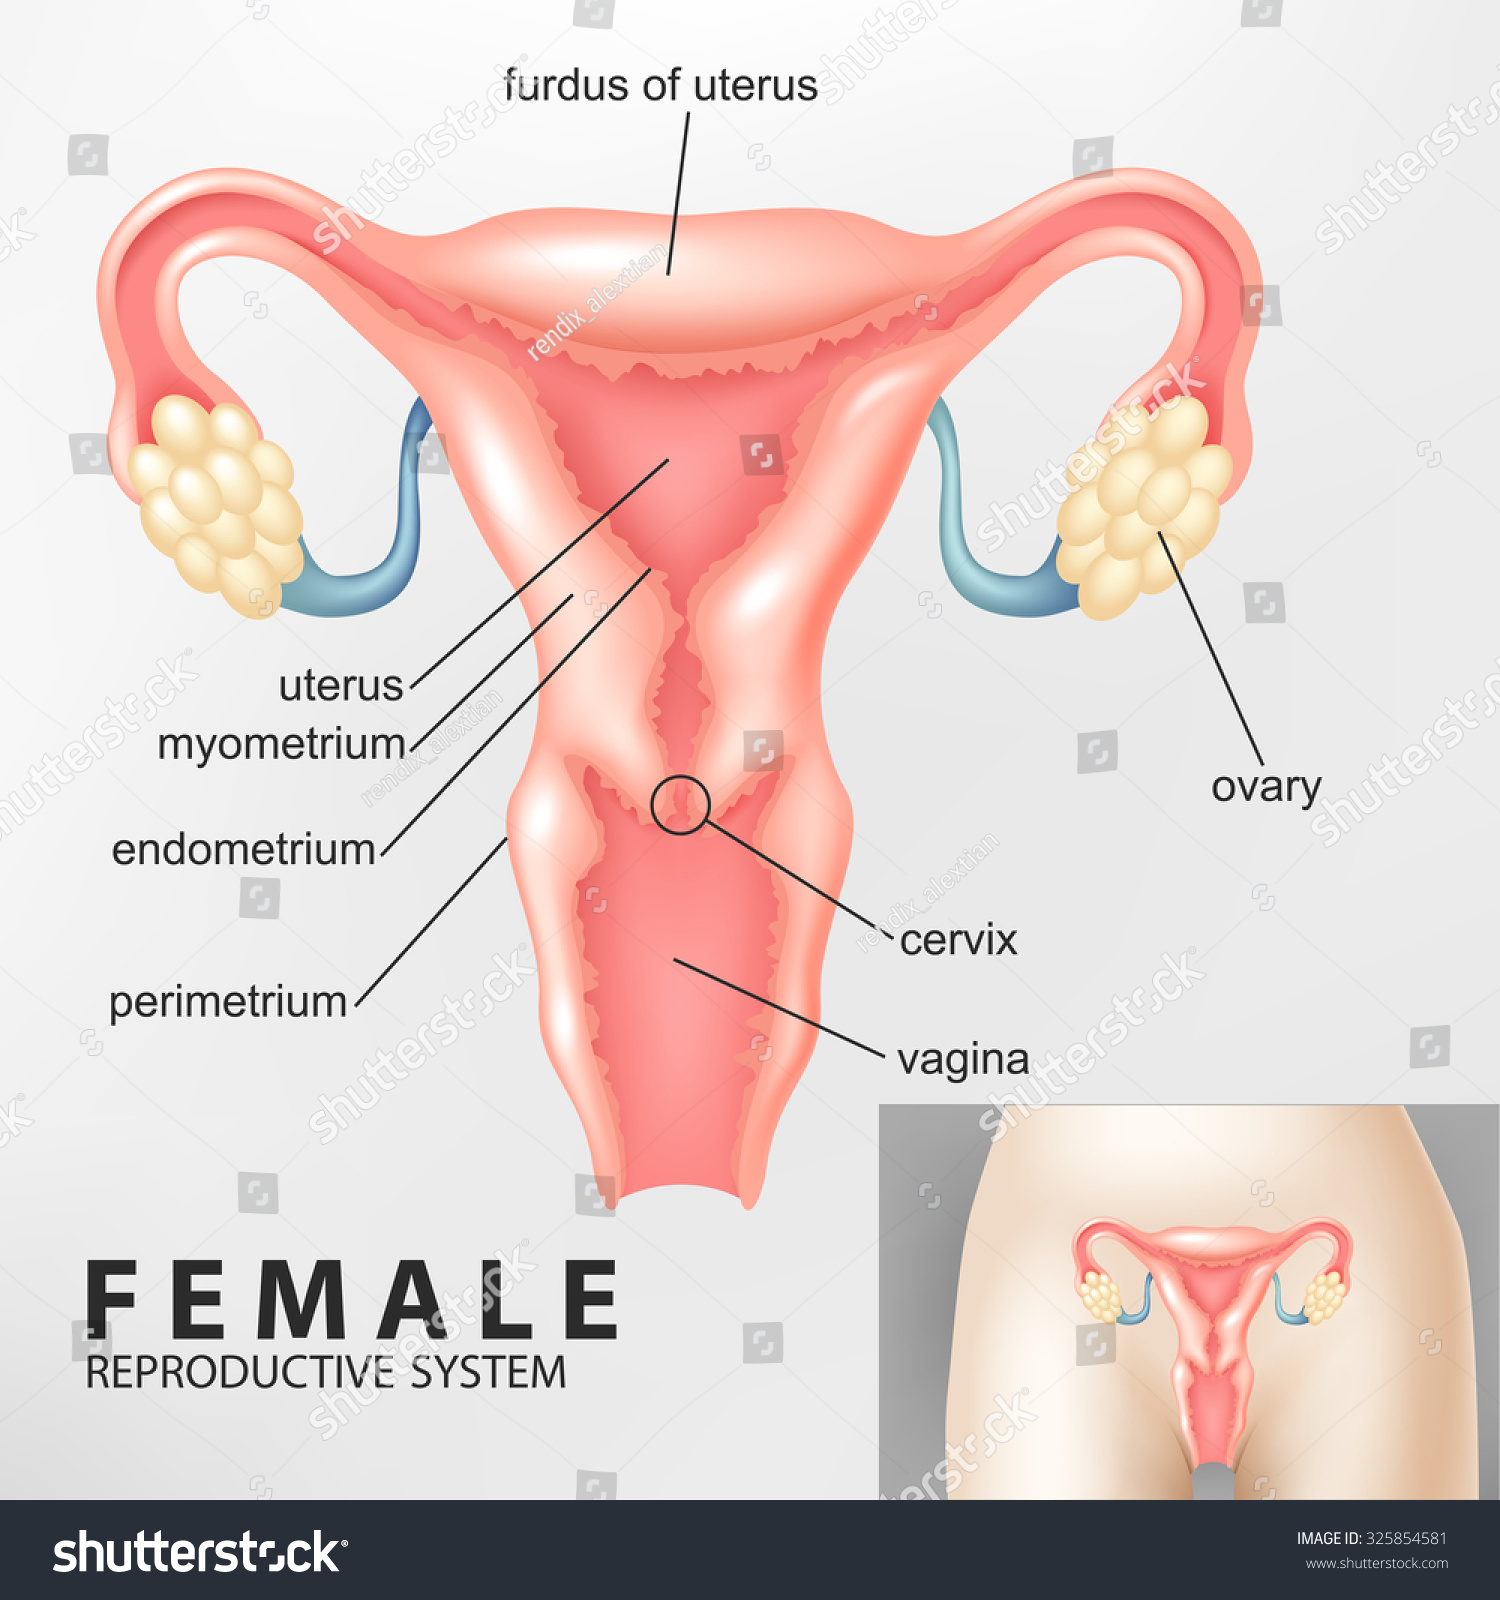 Diagram Female Reproductive System Stock Illustration 325854581